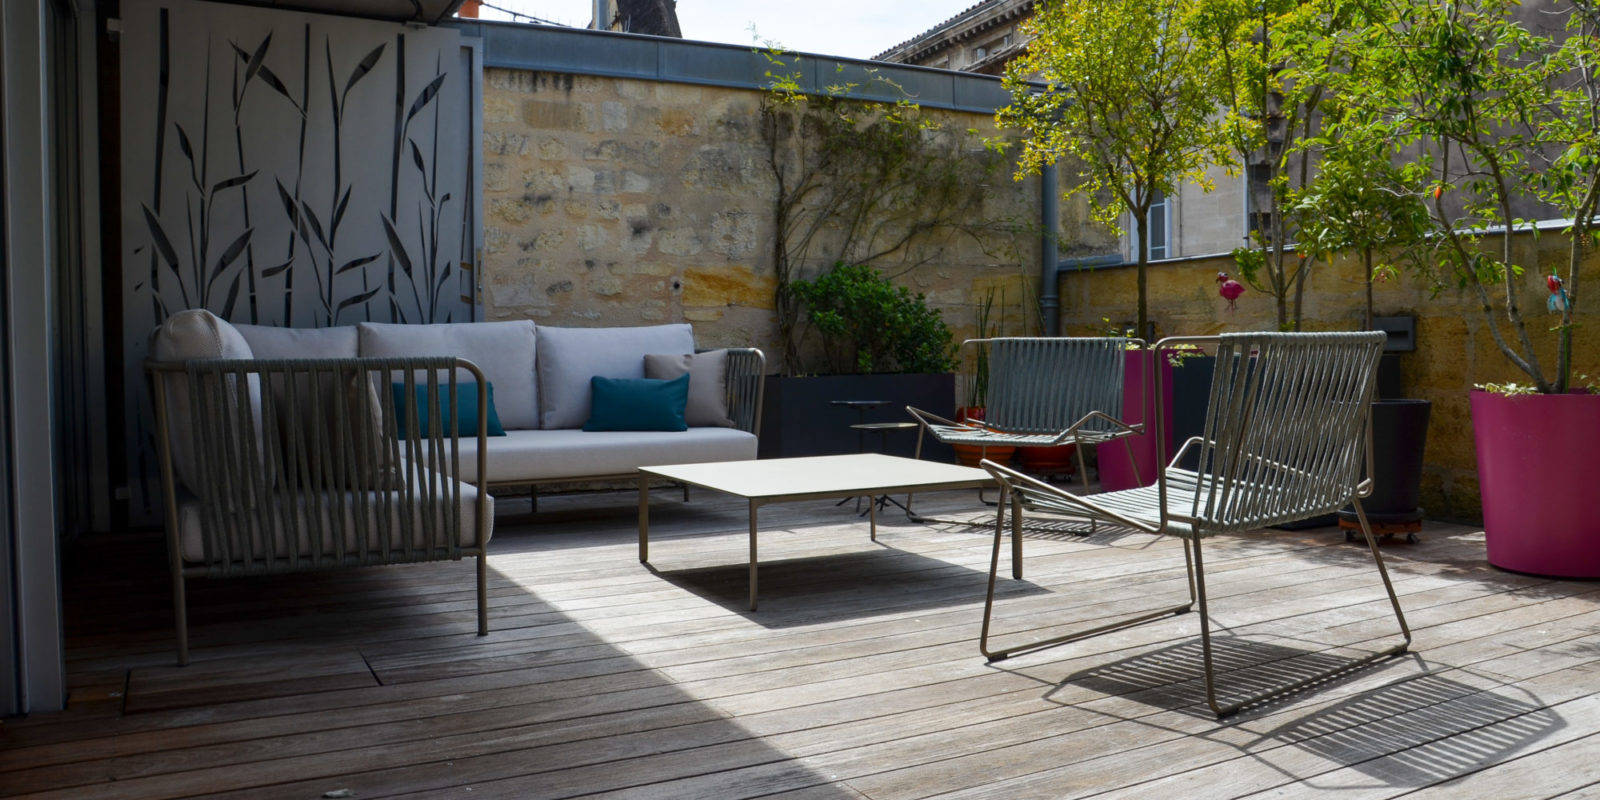 PROJET CHARTRONS - BUXUS